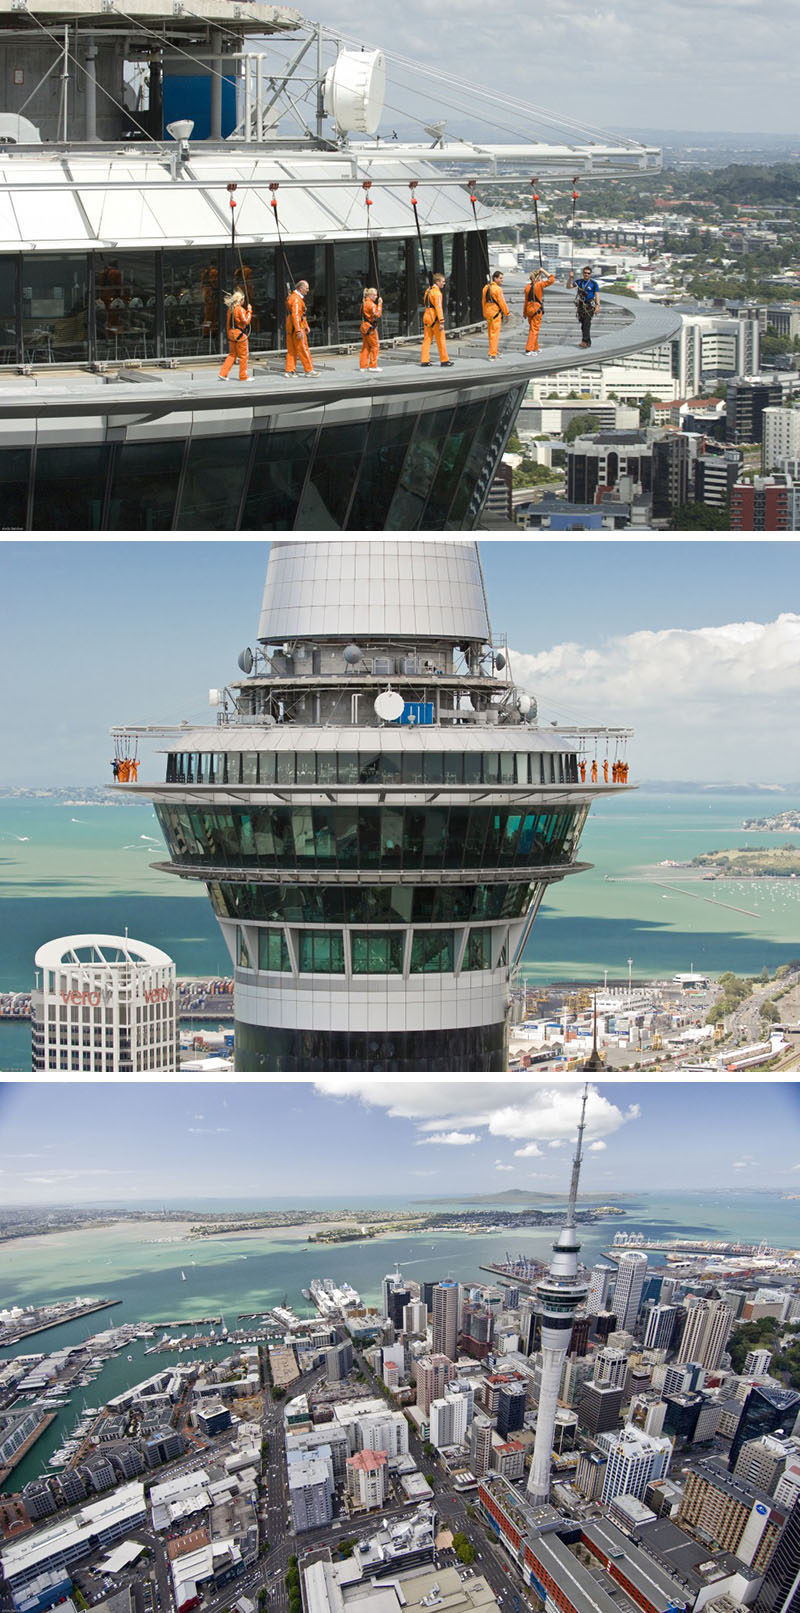 17 Tourist Activities That Would Be A Nightmare For People With A Fear Of Heights // Sky Tower - Auckland, New Zealand